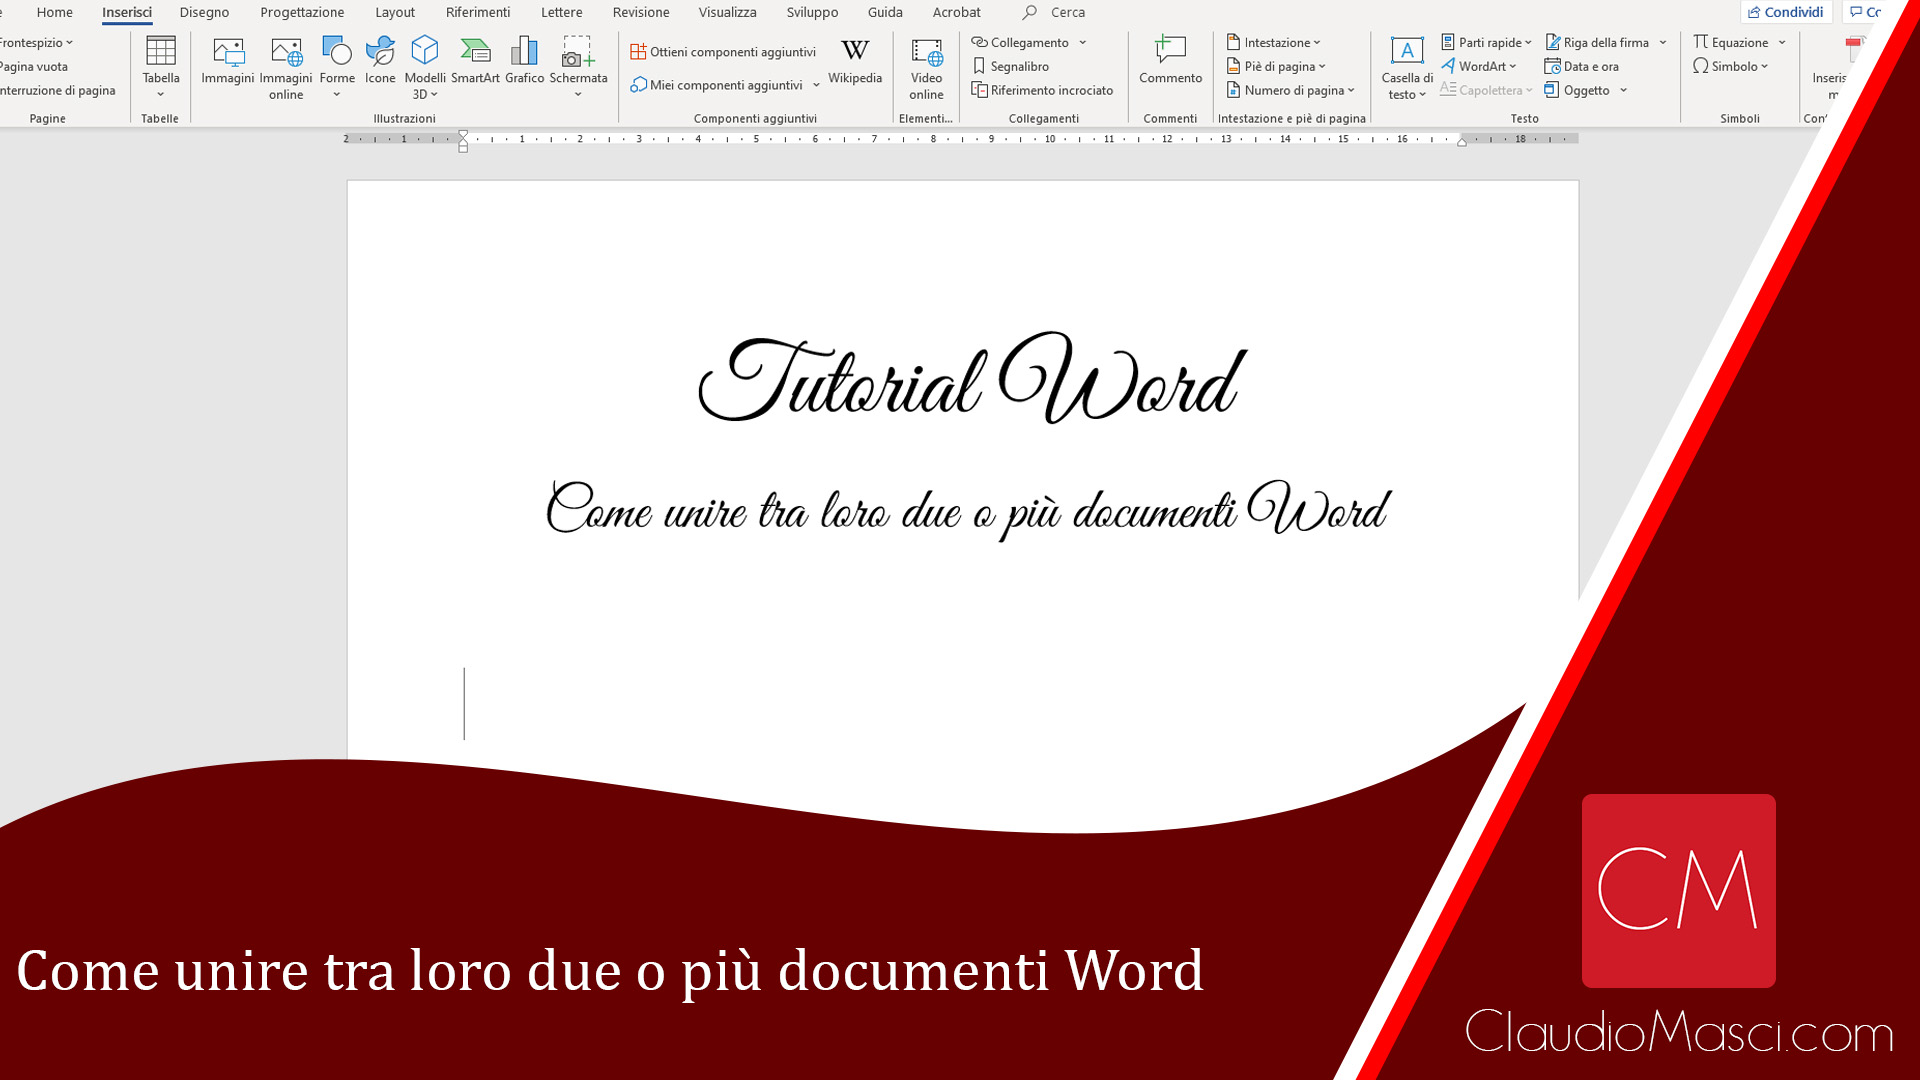 Come unire tra loro due o più documenti Word – Tutorial Microsoft Word